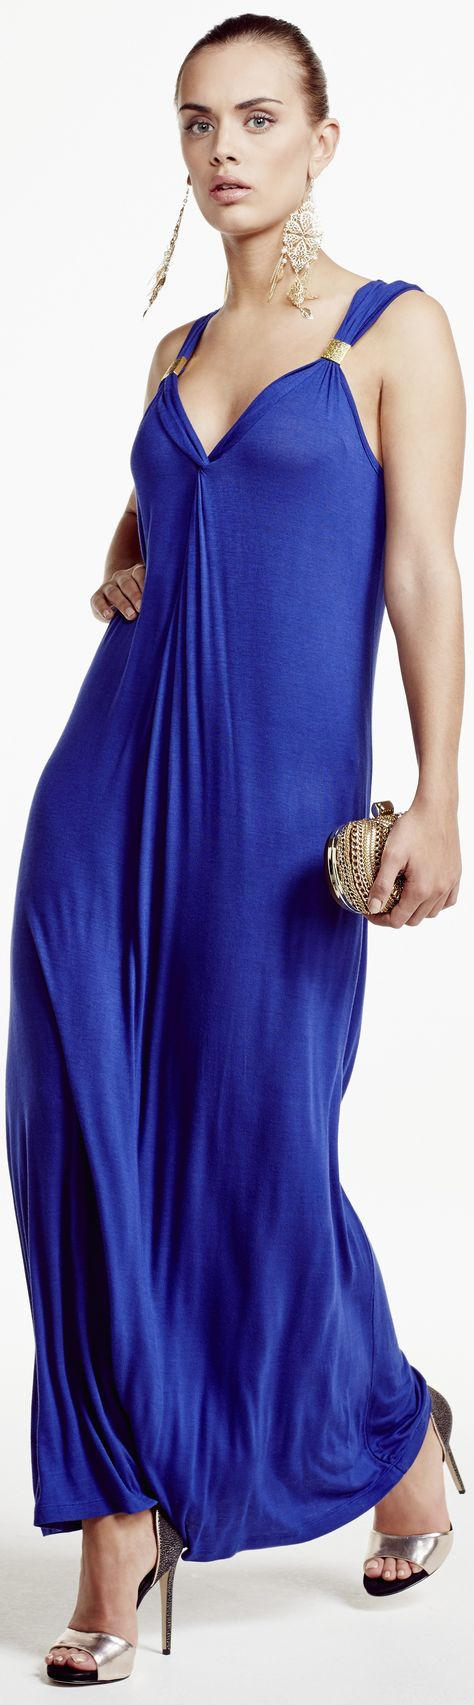 Plus Size Party Dress in Cobalt Blue for 2015 - http://www.boomerinas.com/2013/08/25/top-20-trends-for-fall-2013-the-good-the-bad-and-the-ugly/